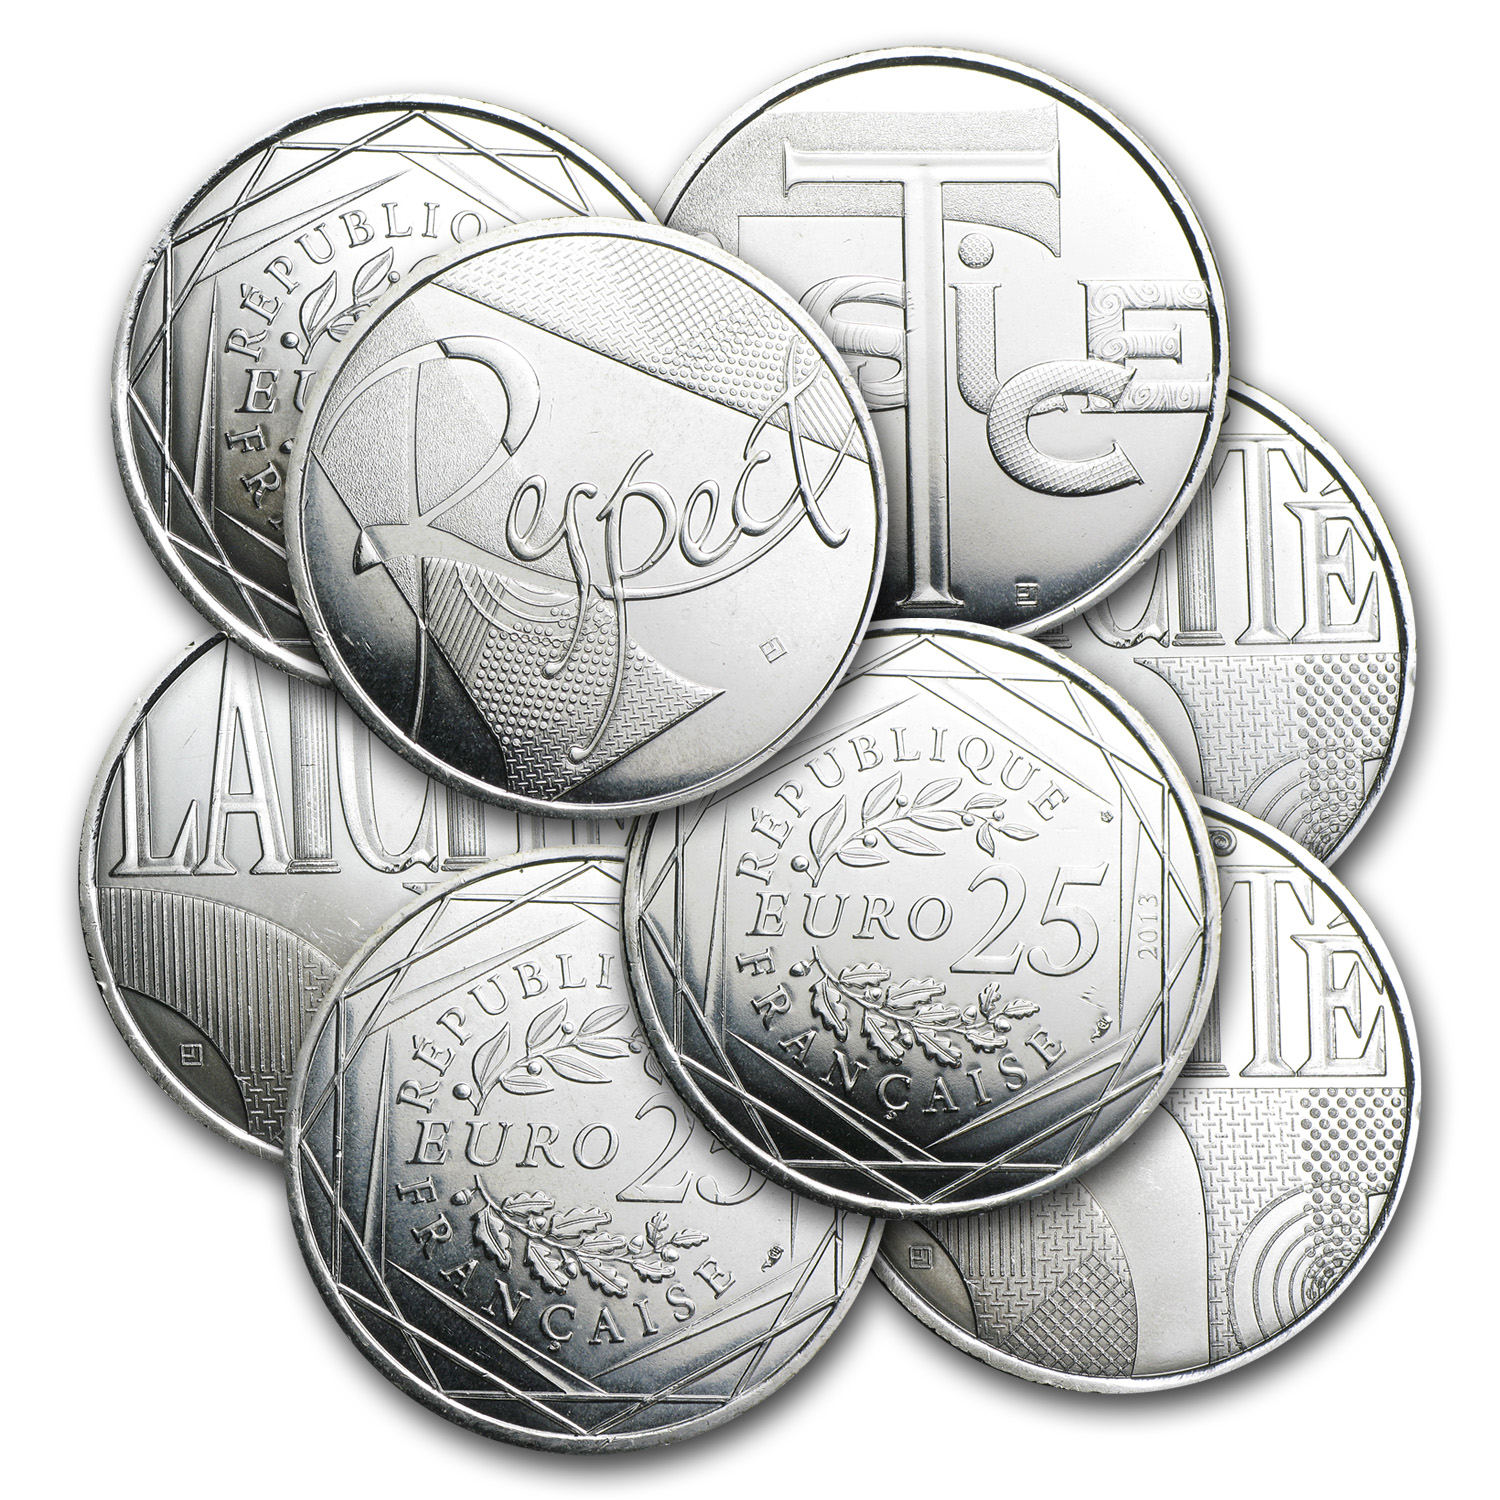 2013 Silver €25 value (Face Value) coin